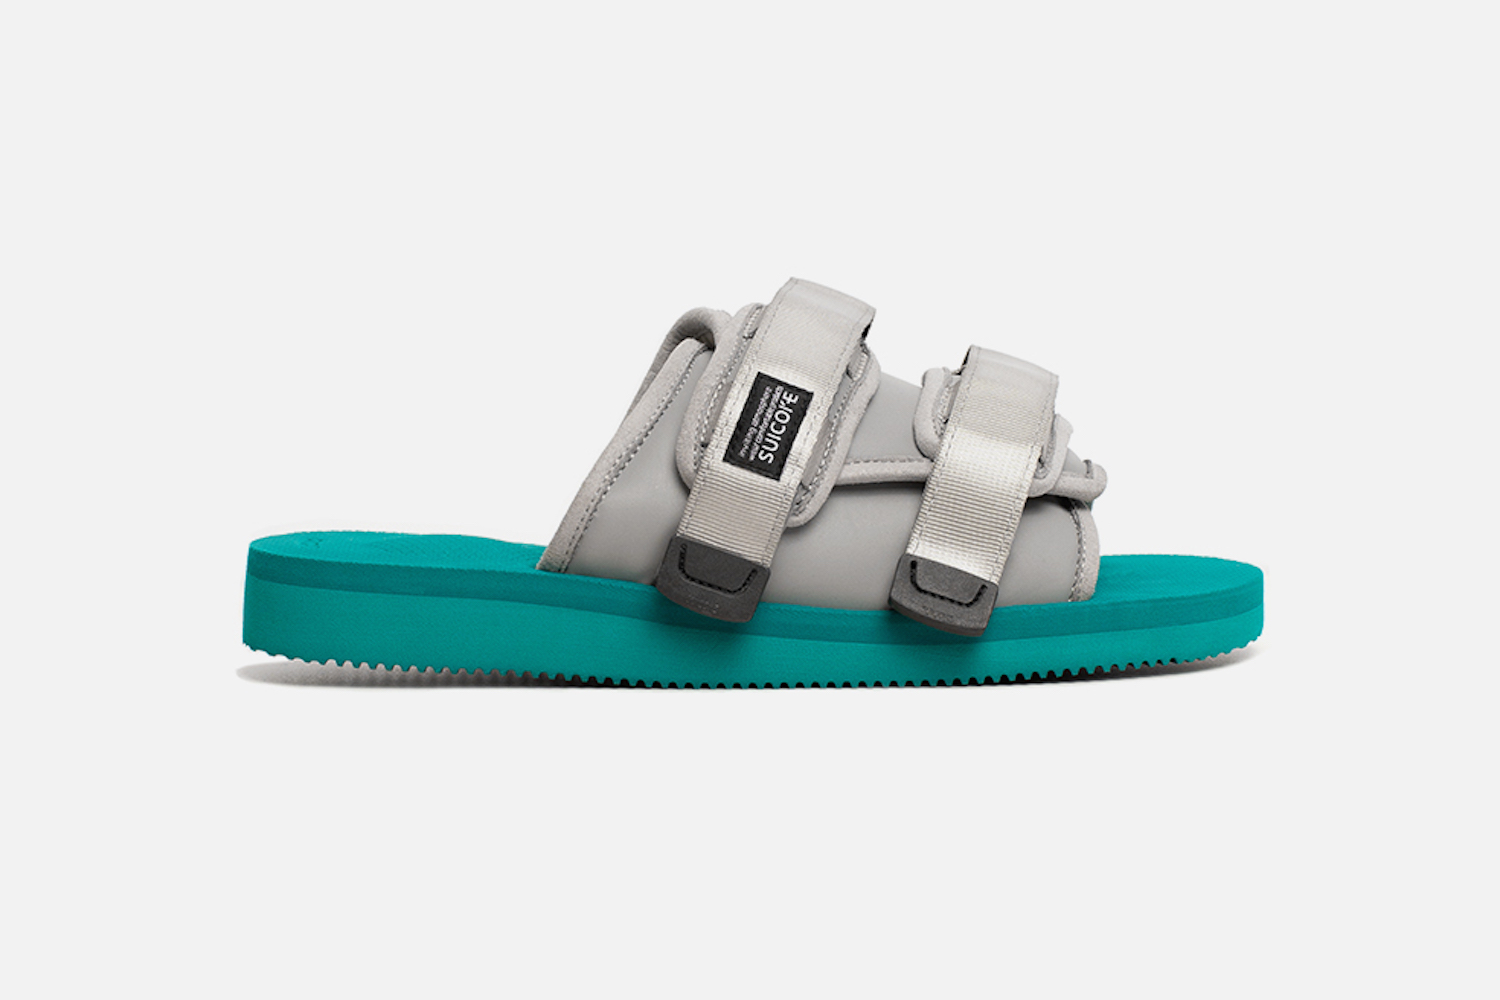 1d5d1cef5b4f The John Elliott x Suicoke Moto Sandal Is Dropping Tomorrow – HUSH ...